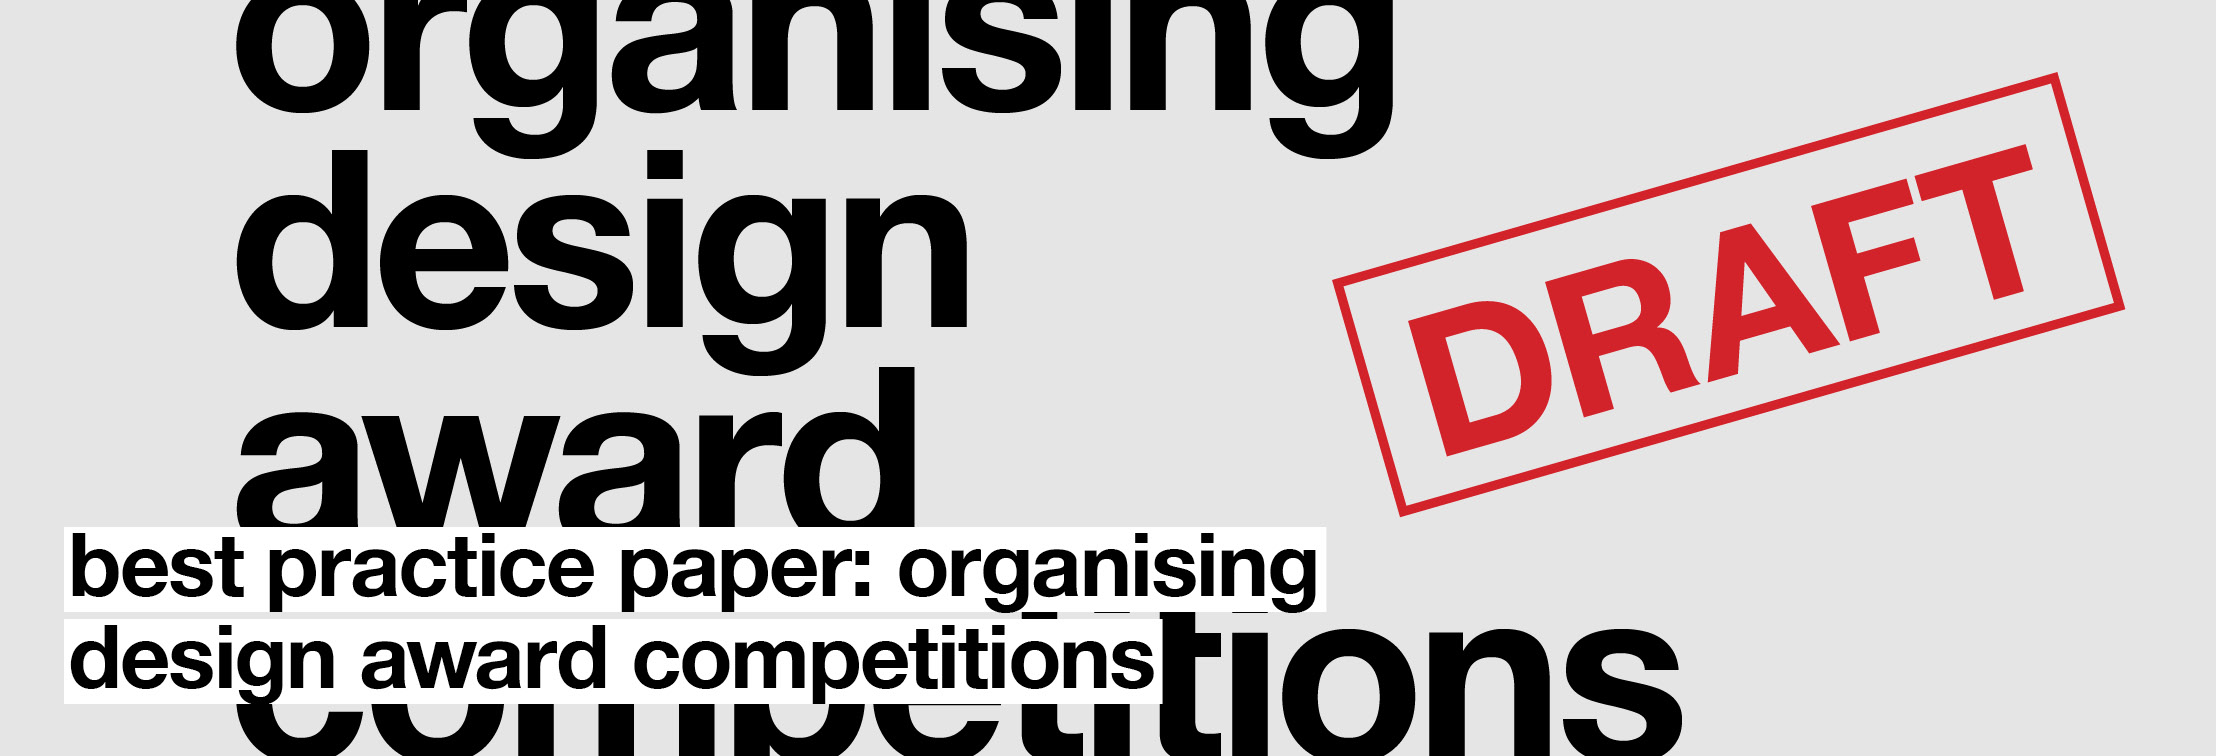 Organising Design Award Competitions